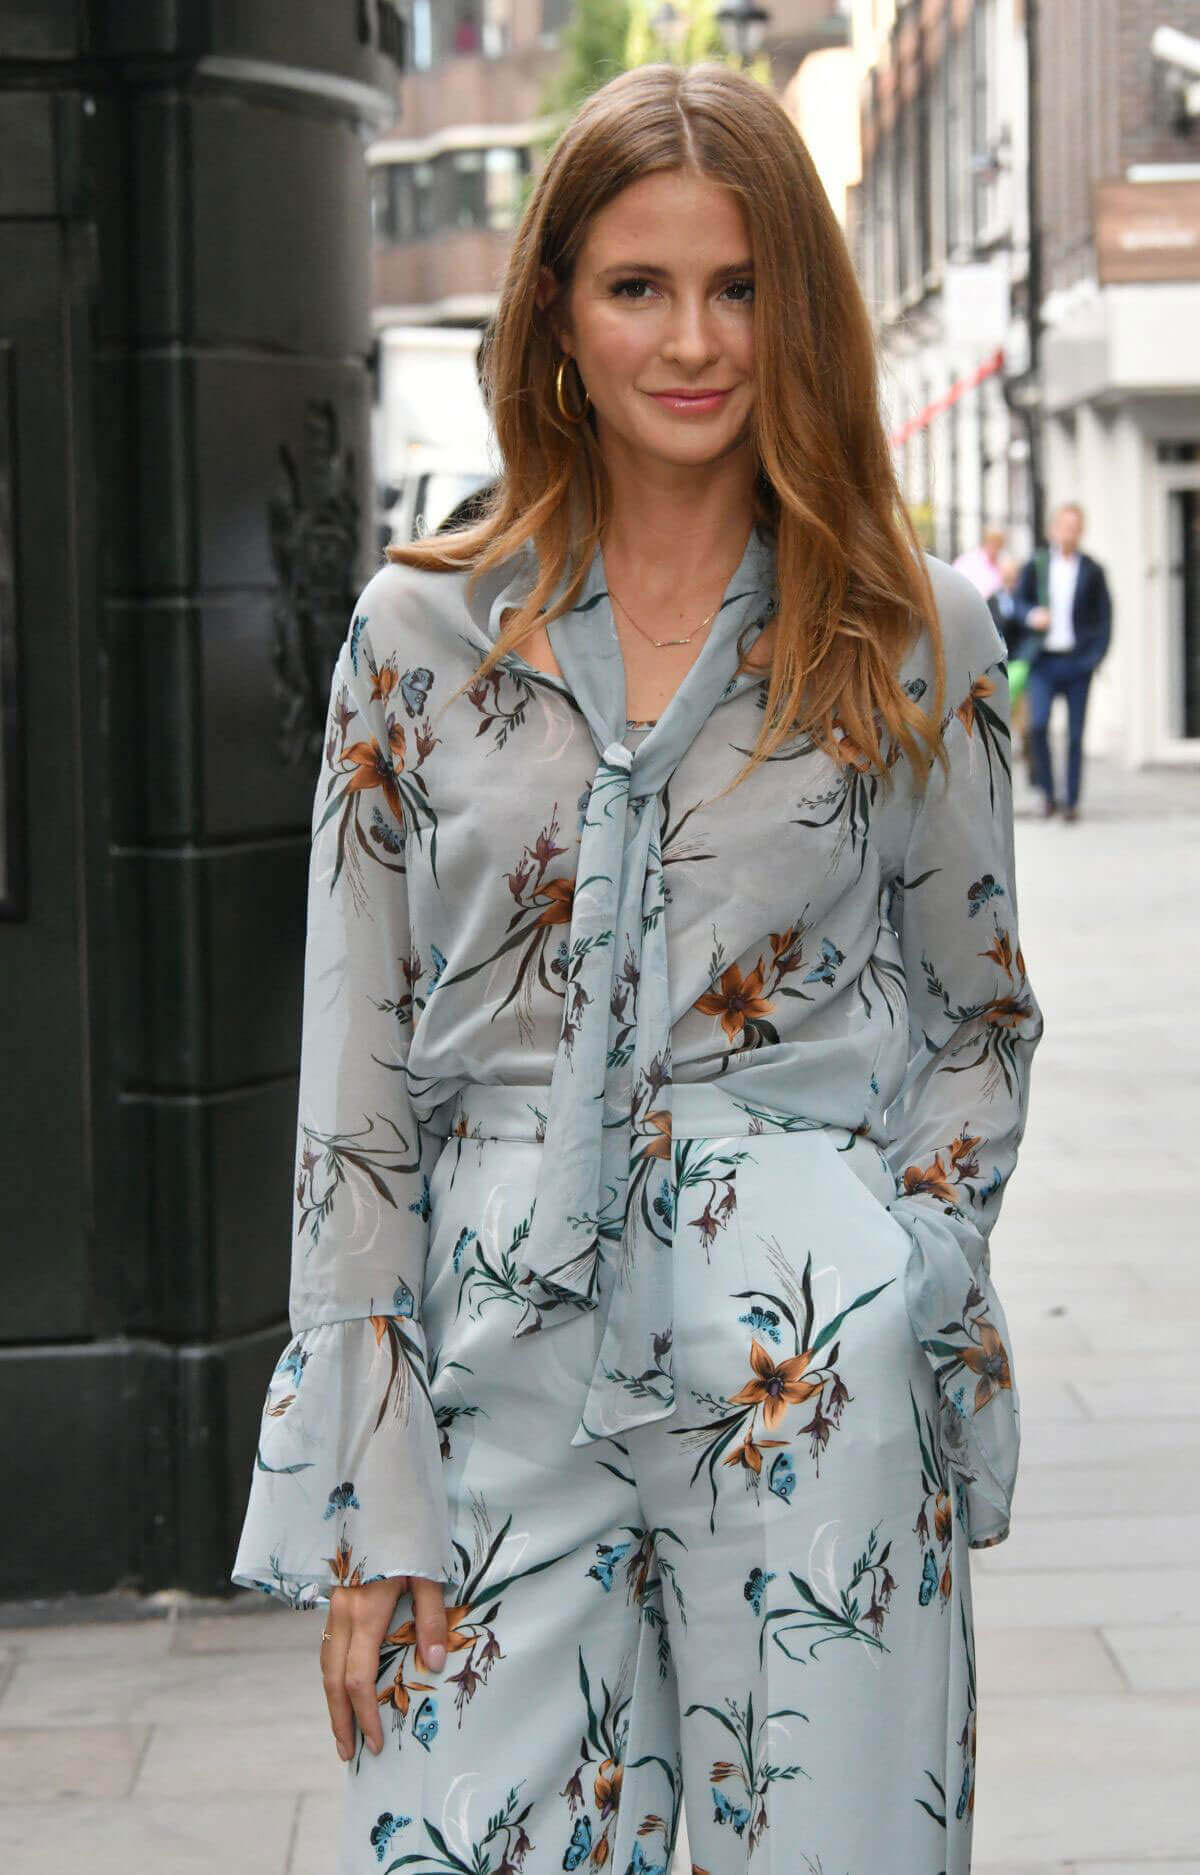 Millie Mackintosh wears floral co-ord dress out in London